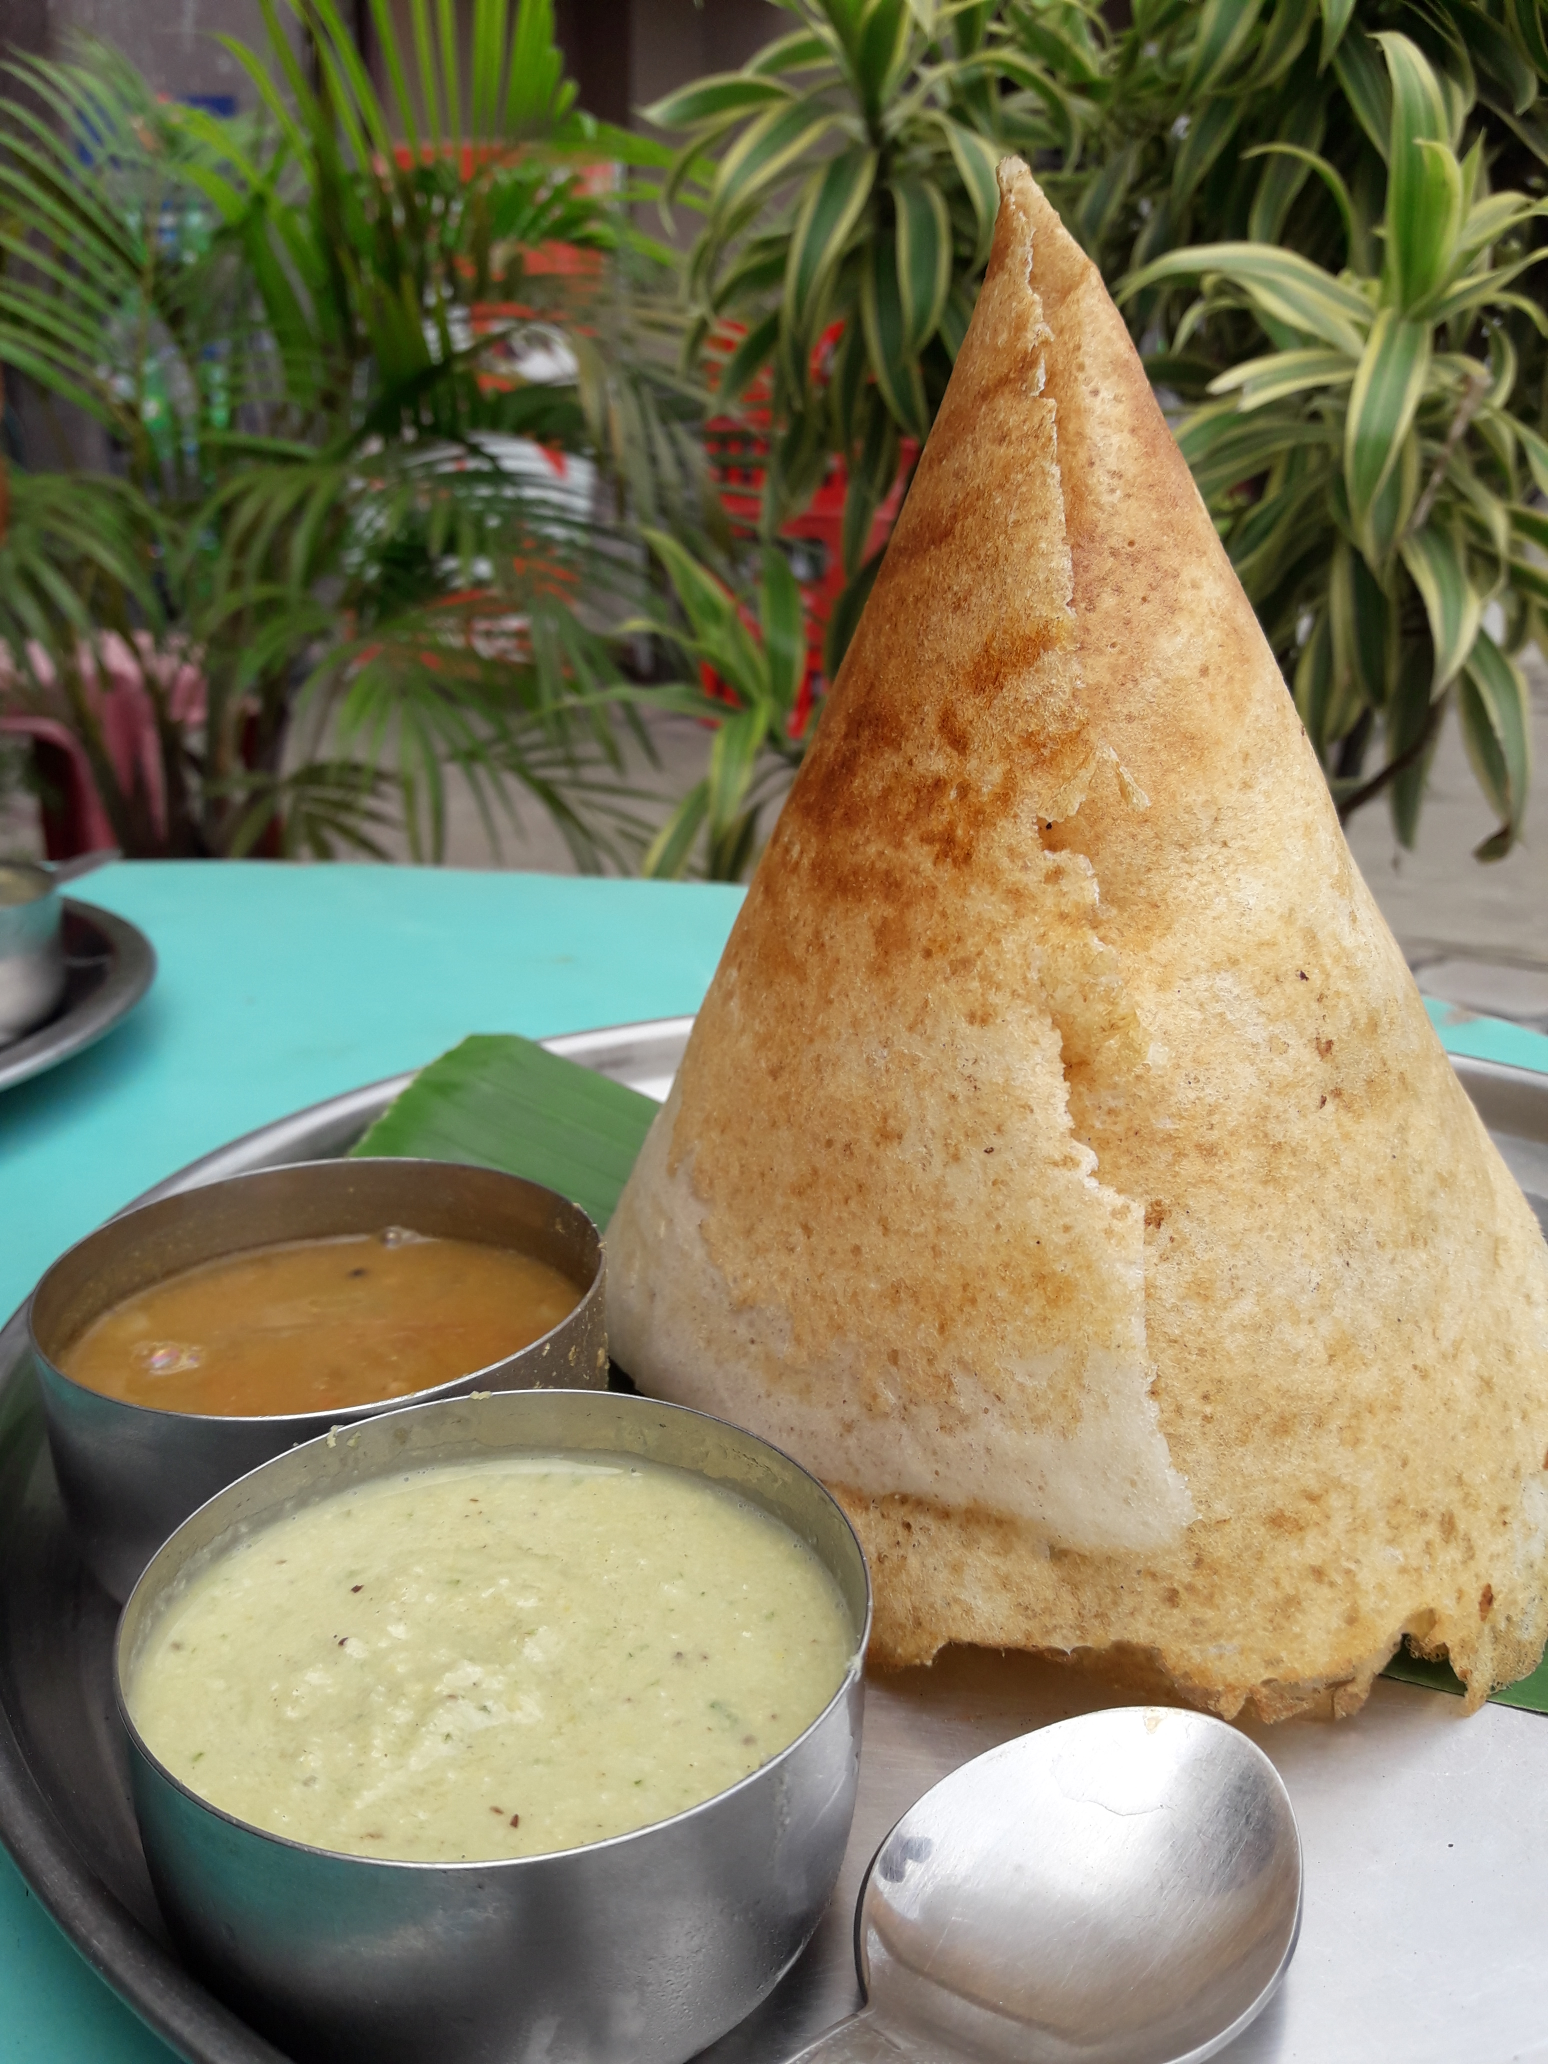 The Bhuribhoj Co.-Flavours of the South in the City of Joy